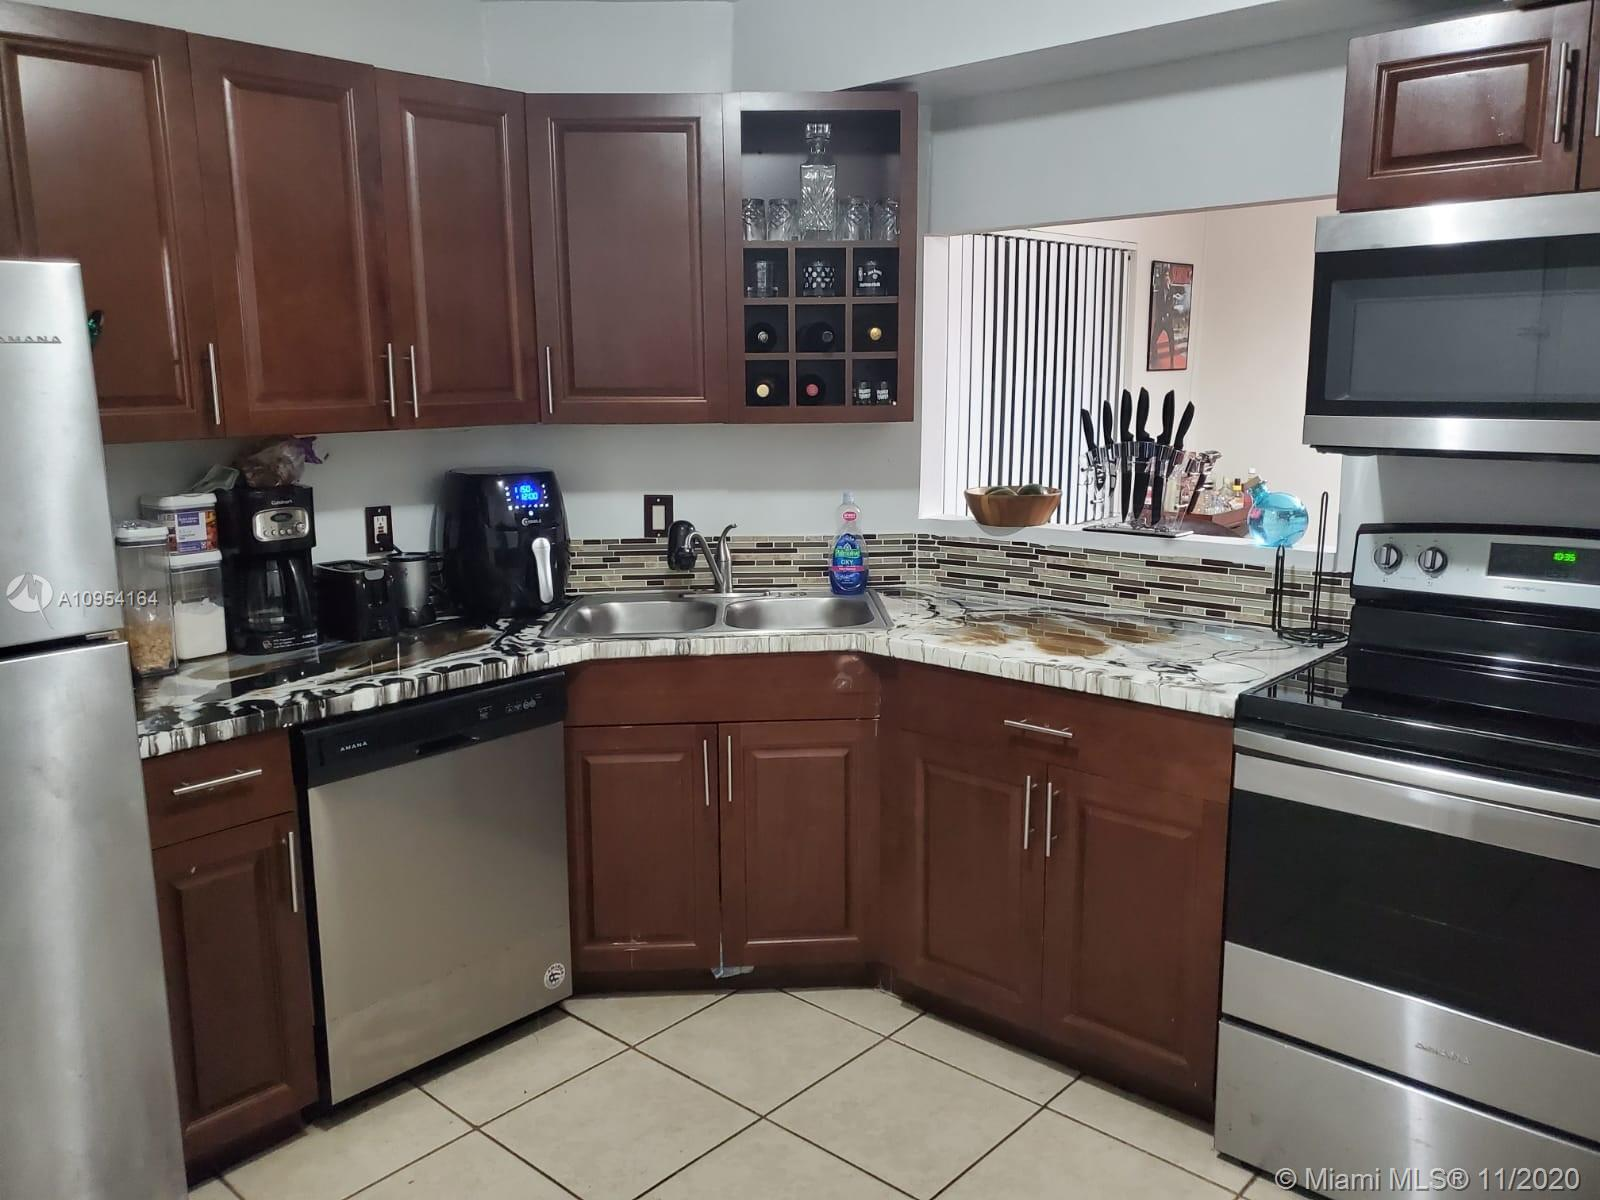 Renovated beautiful large 2/2 corner unit with amazing cross breeze, new wood flooring, stunning cherry wood kitchen cabinets, new stainless steel appliances, tiled backsplash and a lot of closet and cabinet space. ALL AGES WELCOME. Master bedroom has 3 closets, 2 walkins and a single with a long spacious bathroom. 2nd bathroom completely remodeled. Split floor plan with a large dining room/entertainment room and living room, very spacious with a eat in kitchen, perfect for entertaining.  Charming peaceful balcony view. A must see won't last long. Seller wants offers on this property. SHOWING SAT & SUN ONLY. Close proximity to Sawgrass Mills mall, 5 minutes to Publix, gas stations, major banks, starbucks & Walmart. Convenient access to turnpike.